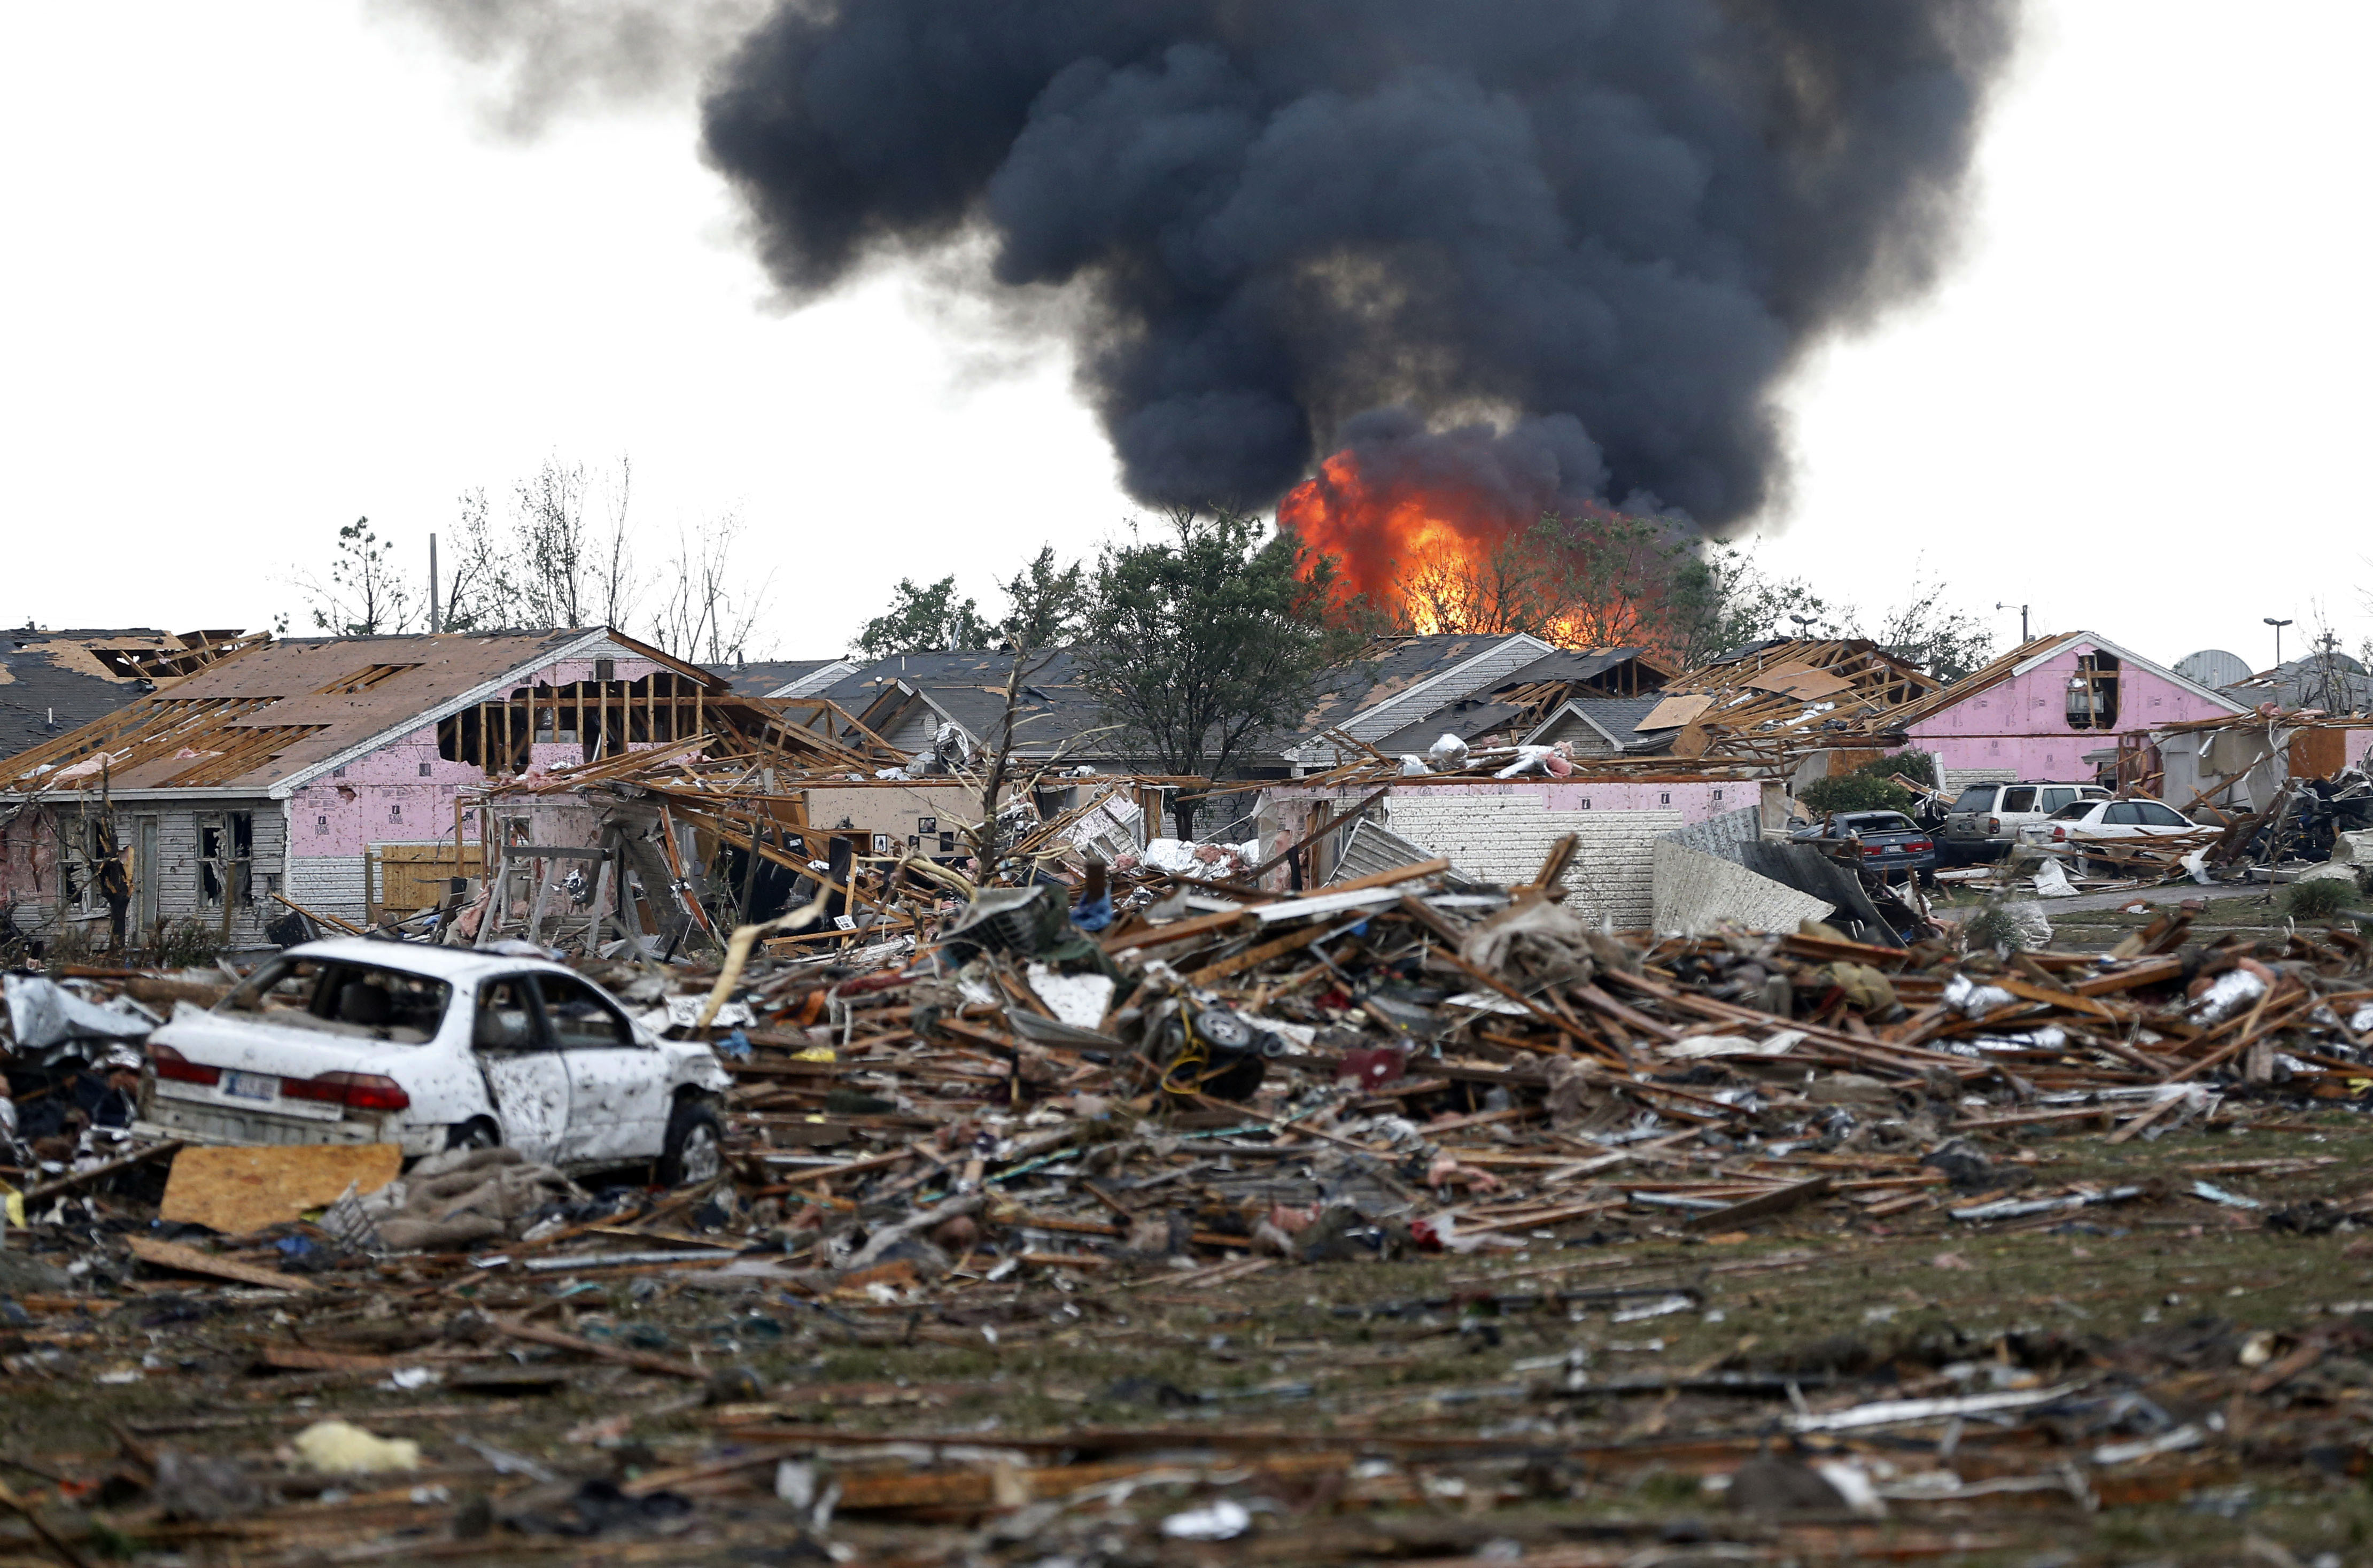 A fire burns in Moore after the twister hit with a rating of at least EF4, according to the National Weather Service. The rating was upgraded Tuesday to EF5.